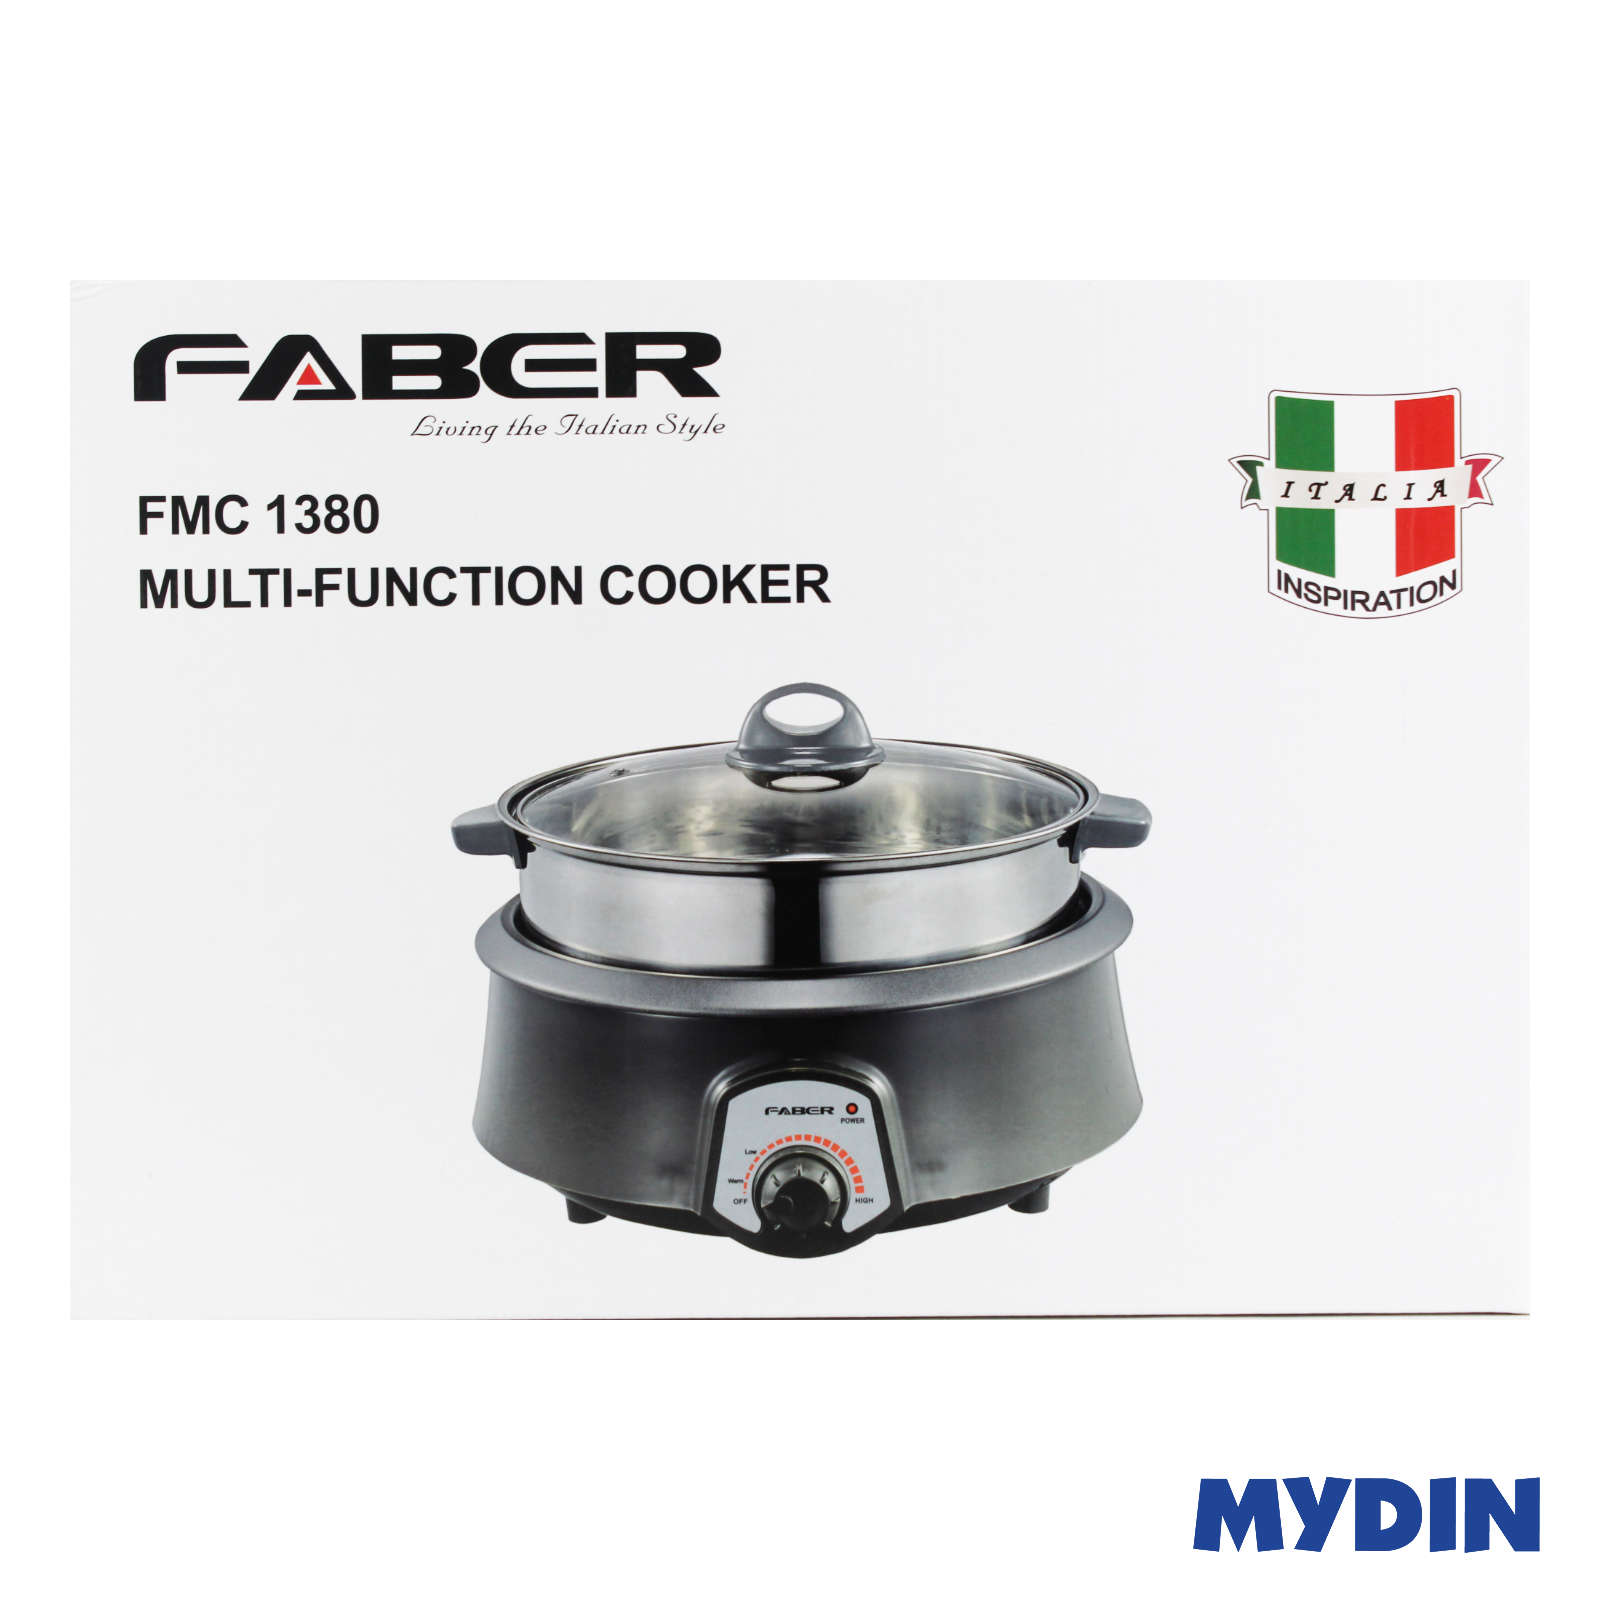 Faber Multicooker With Steamer 4L FMC 1380